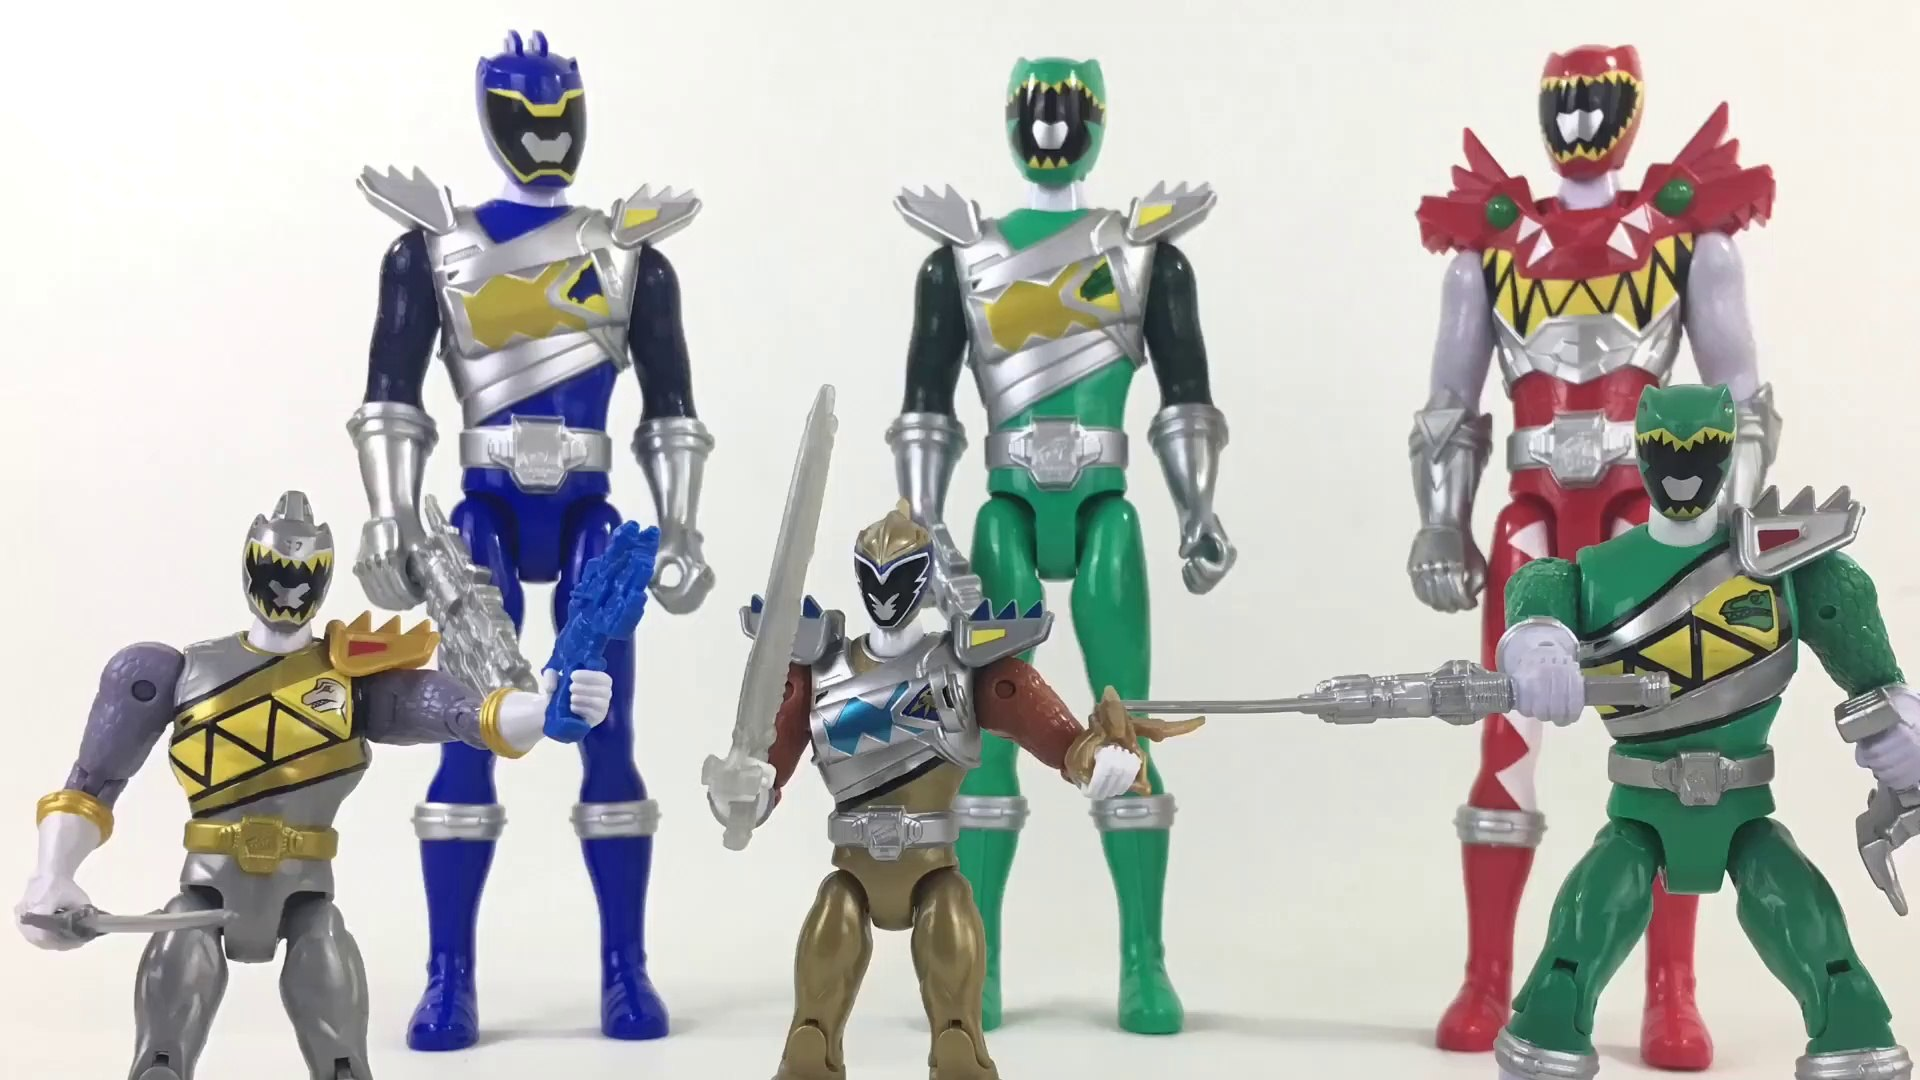 power rangers dino super charge action figures red green blue gold silver keith s toy box video dailymotion power rangers dino super charge action figures red green blue gold silver keith s toy box